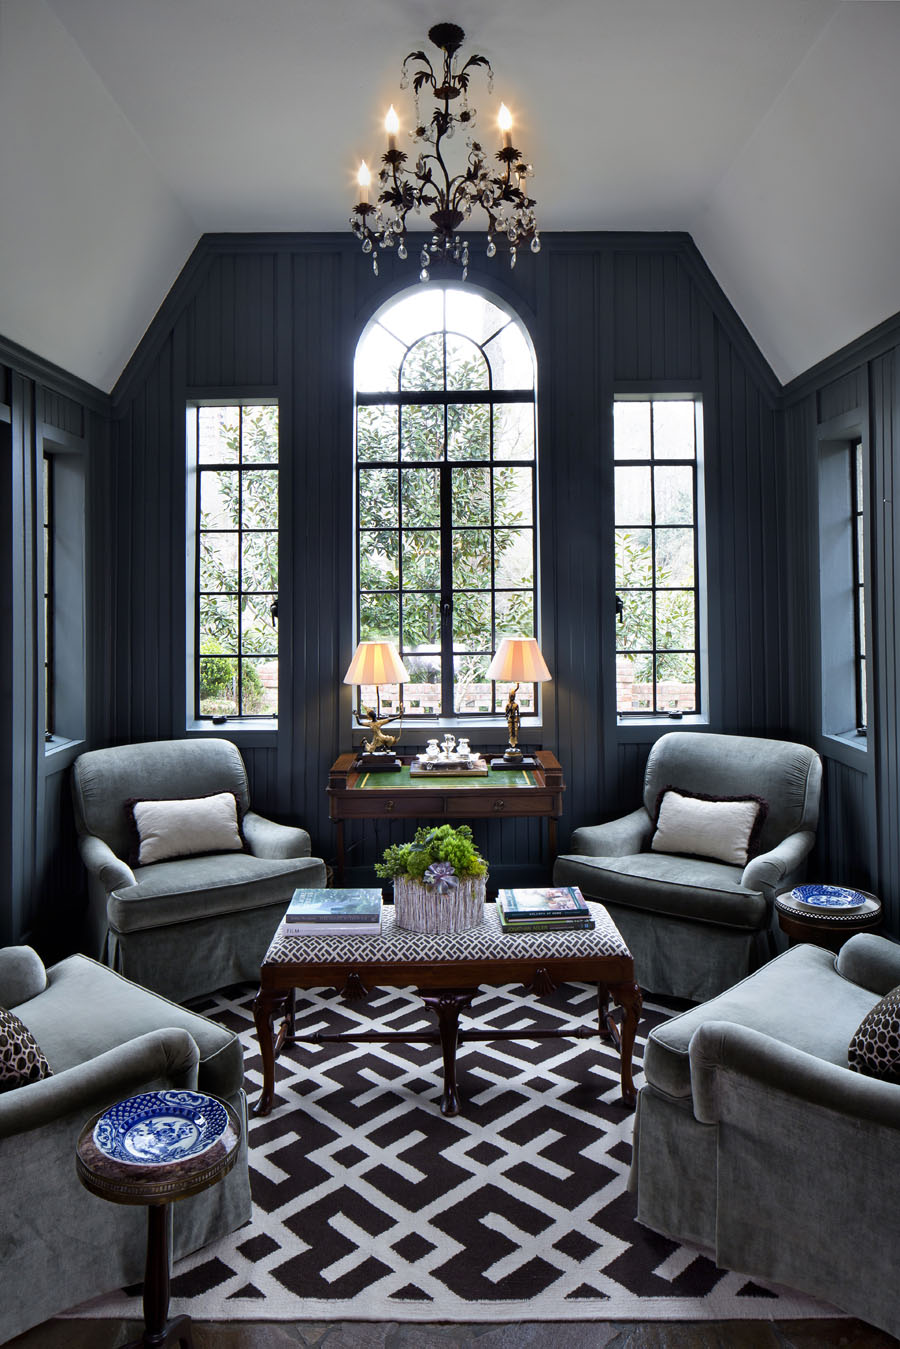 Awesome Jane Goetz | Interior Design